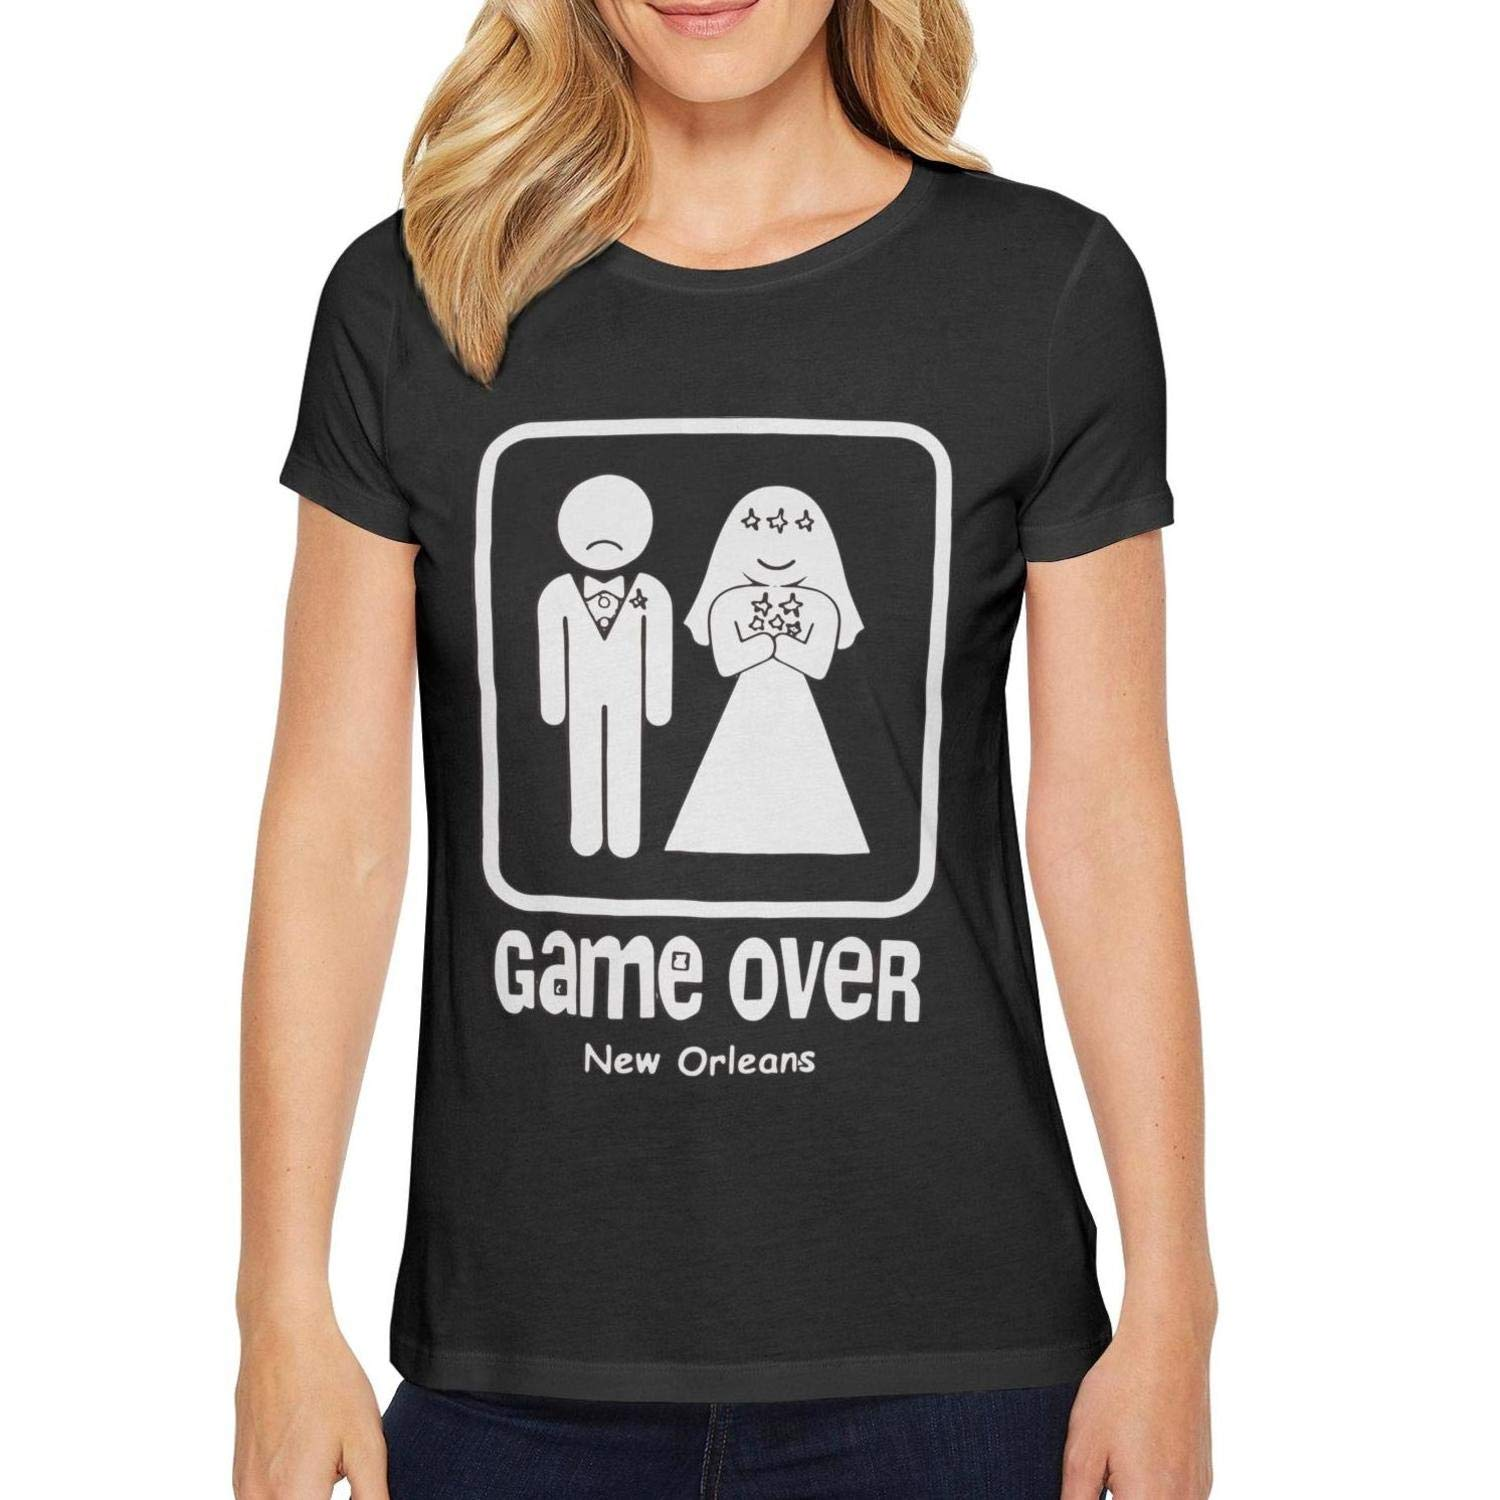 HASDHQQD T Shirts for Women Wedding-Game Over Women Short Sleeve t-Shirts tee Printed Fashion Personalized